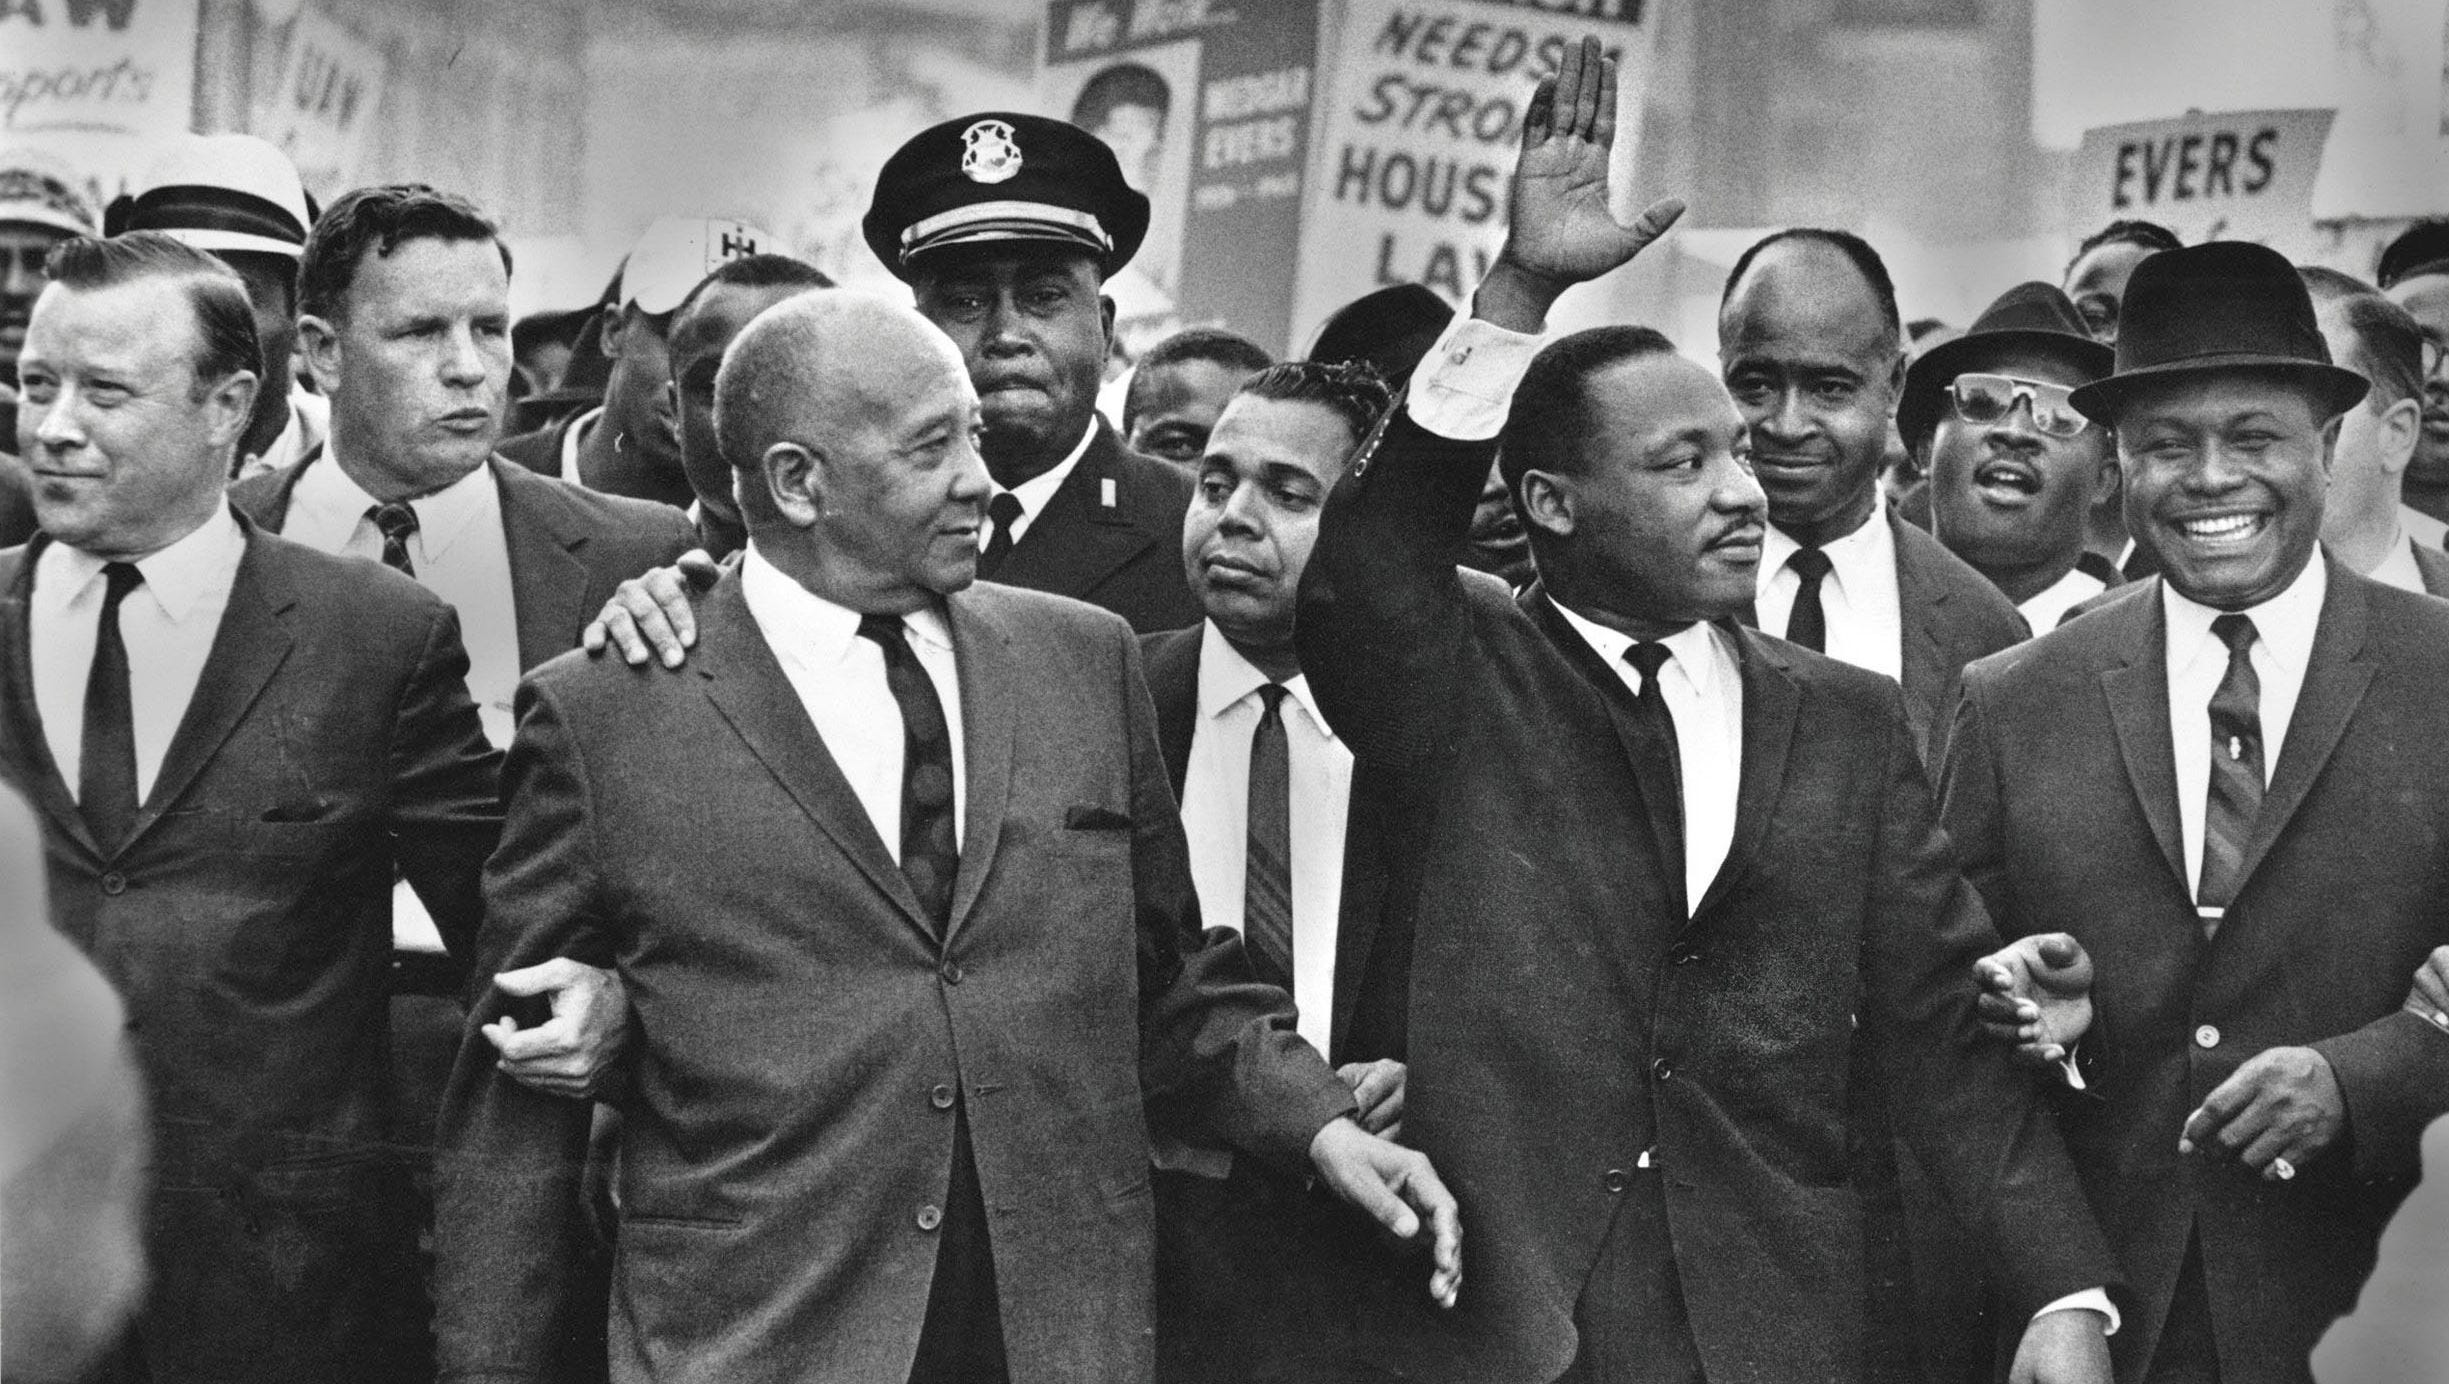 Dr. Martin Luther King Jr. Day - Jan 18th